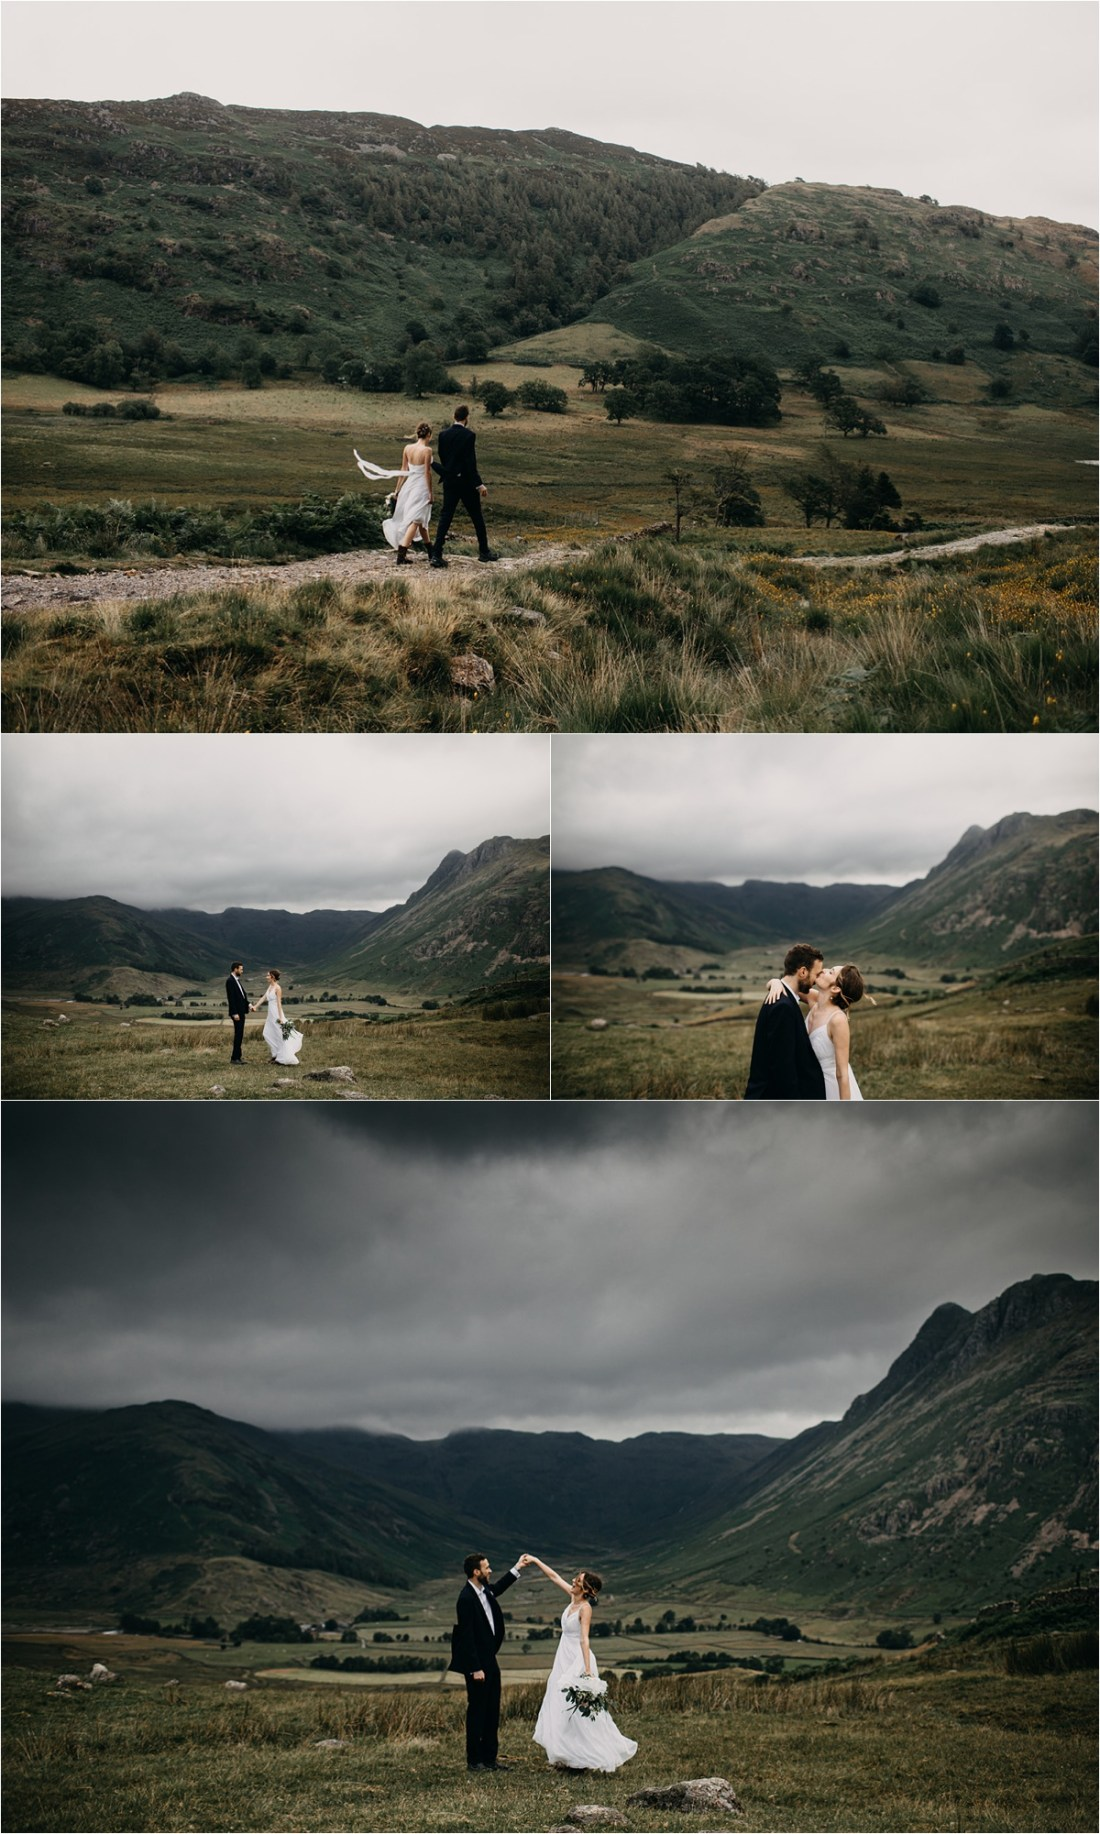 An elopement wedding at Blea Tarn in the Lake District in England. Photos by Unfurl Photography